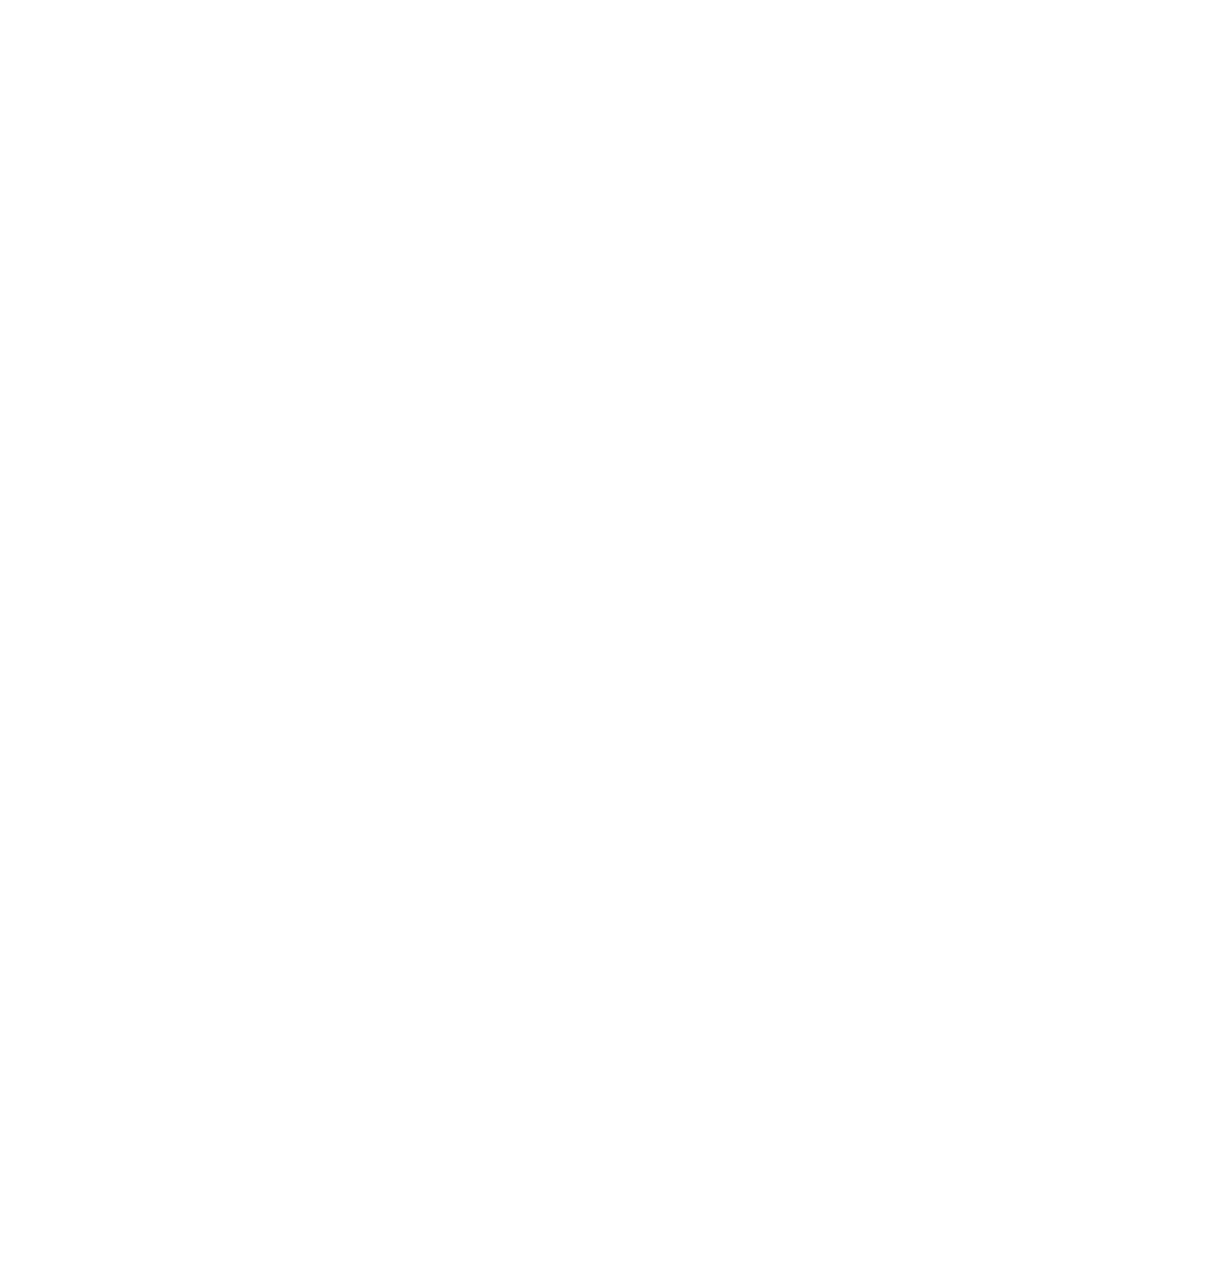 Gappa Security Solutions